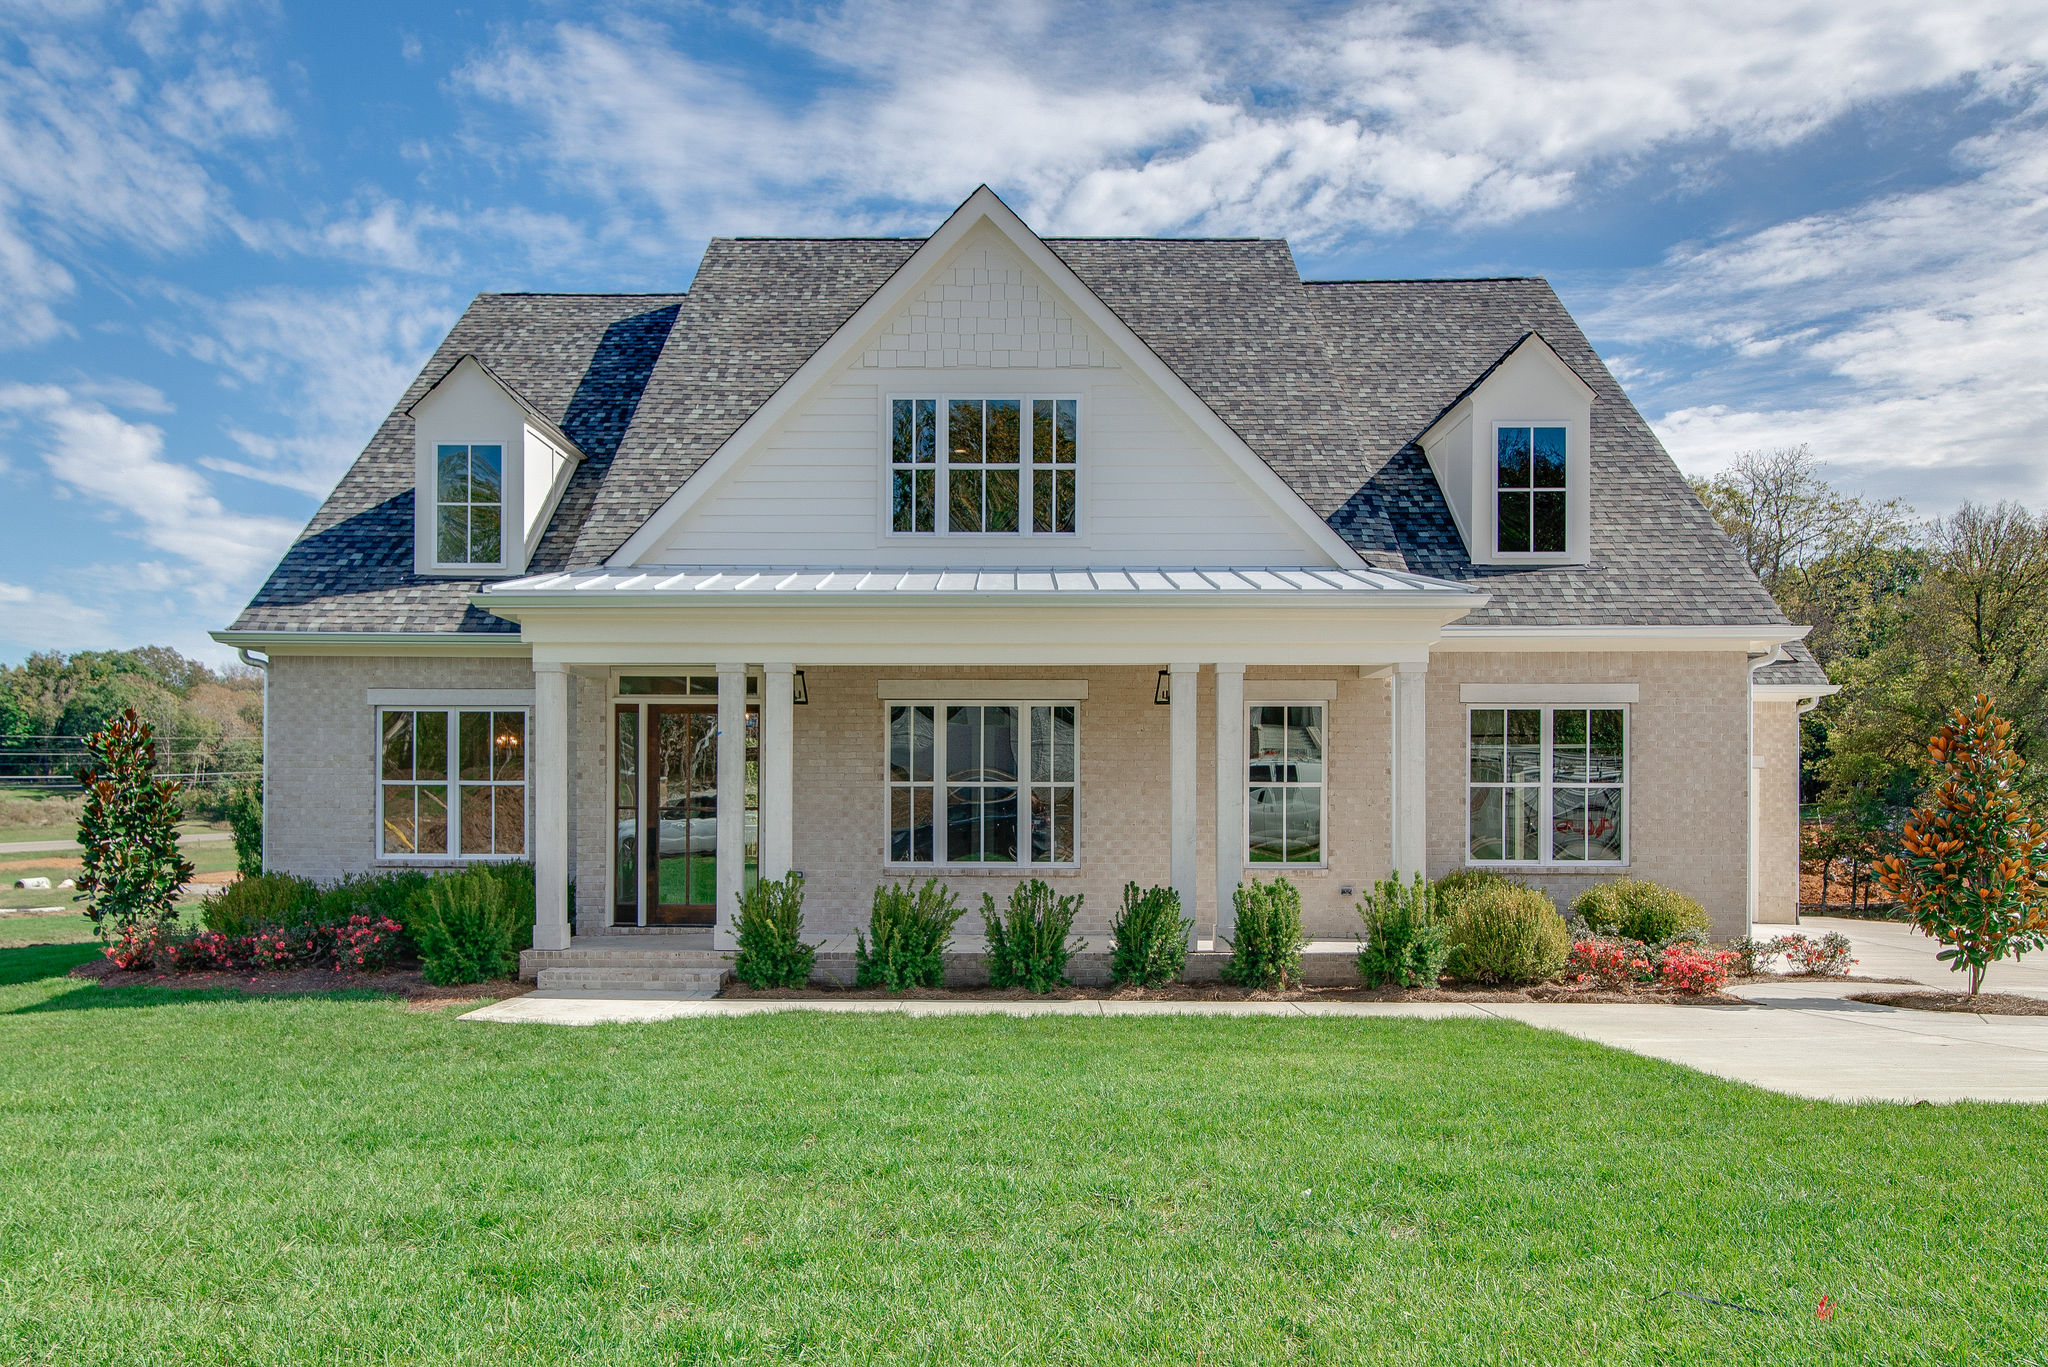 A beautiful home, new homes in Brentwood, TN, Franklin, TN and Arrington, TN, call Tennessee Valley Homes today!